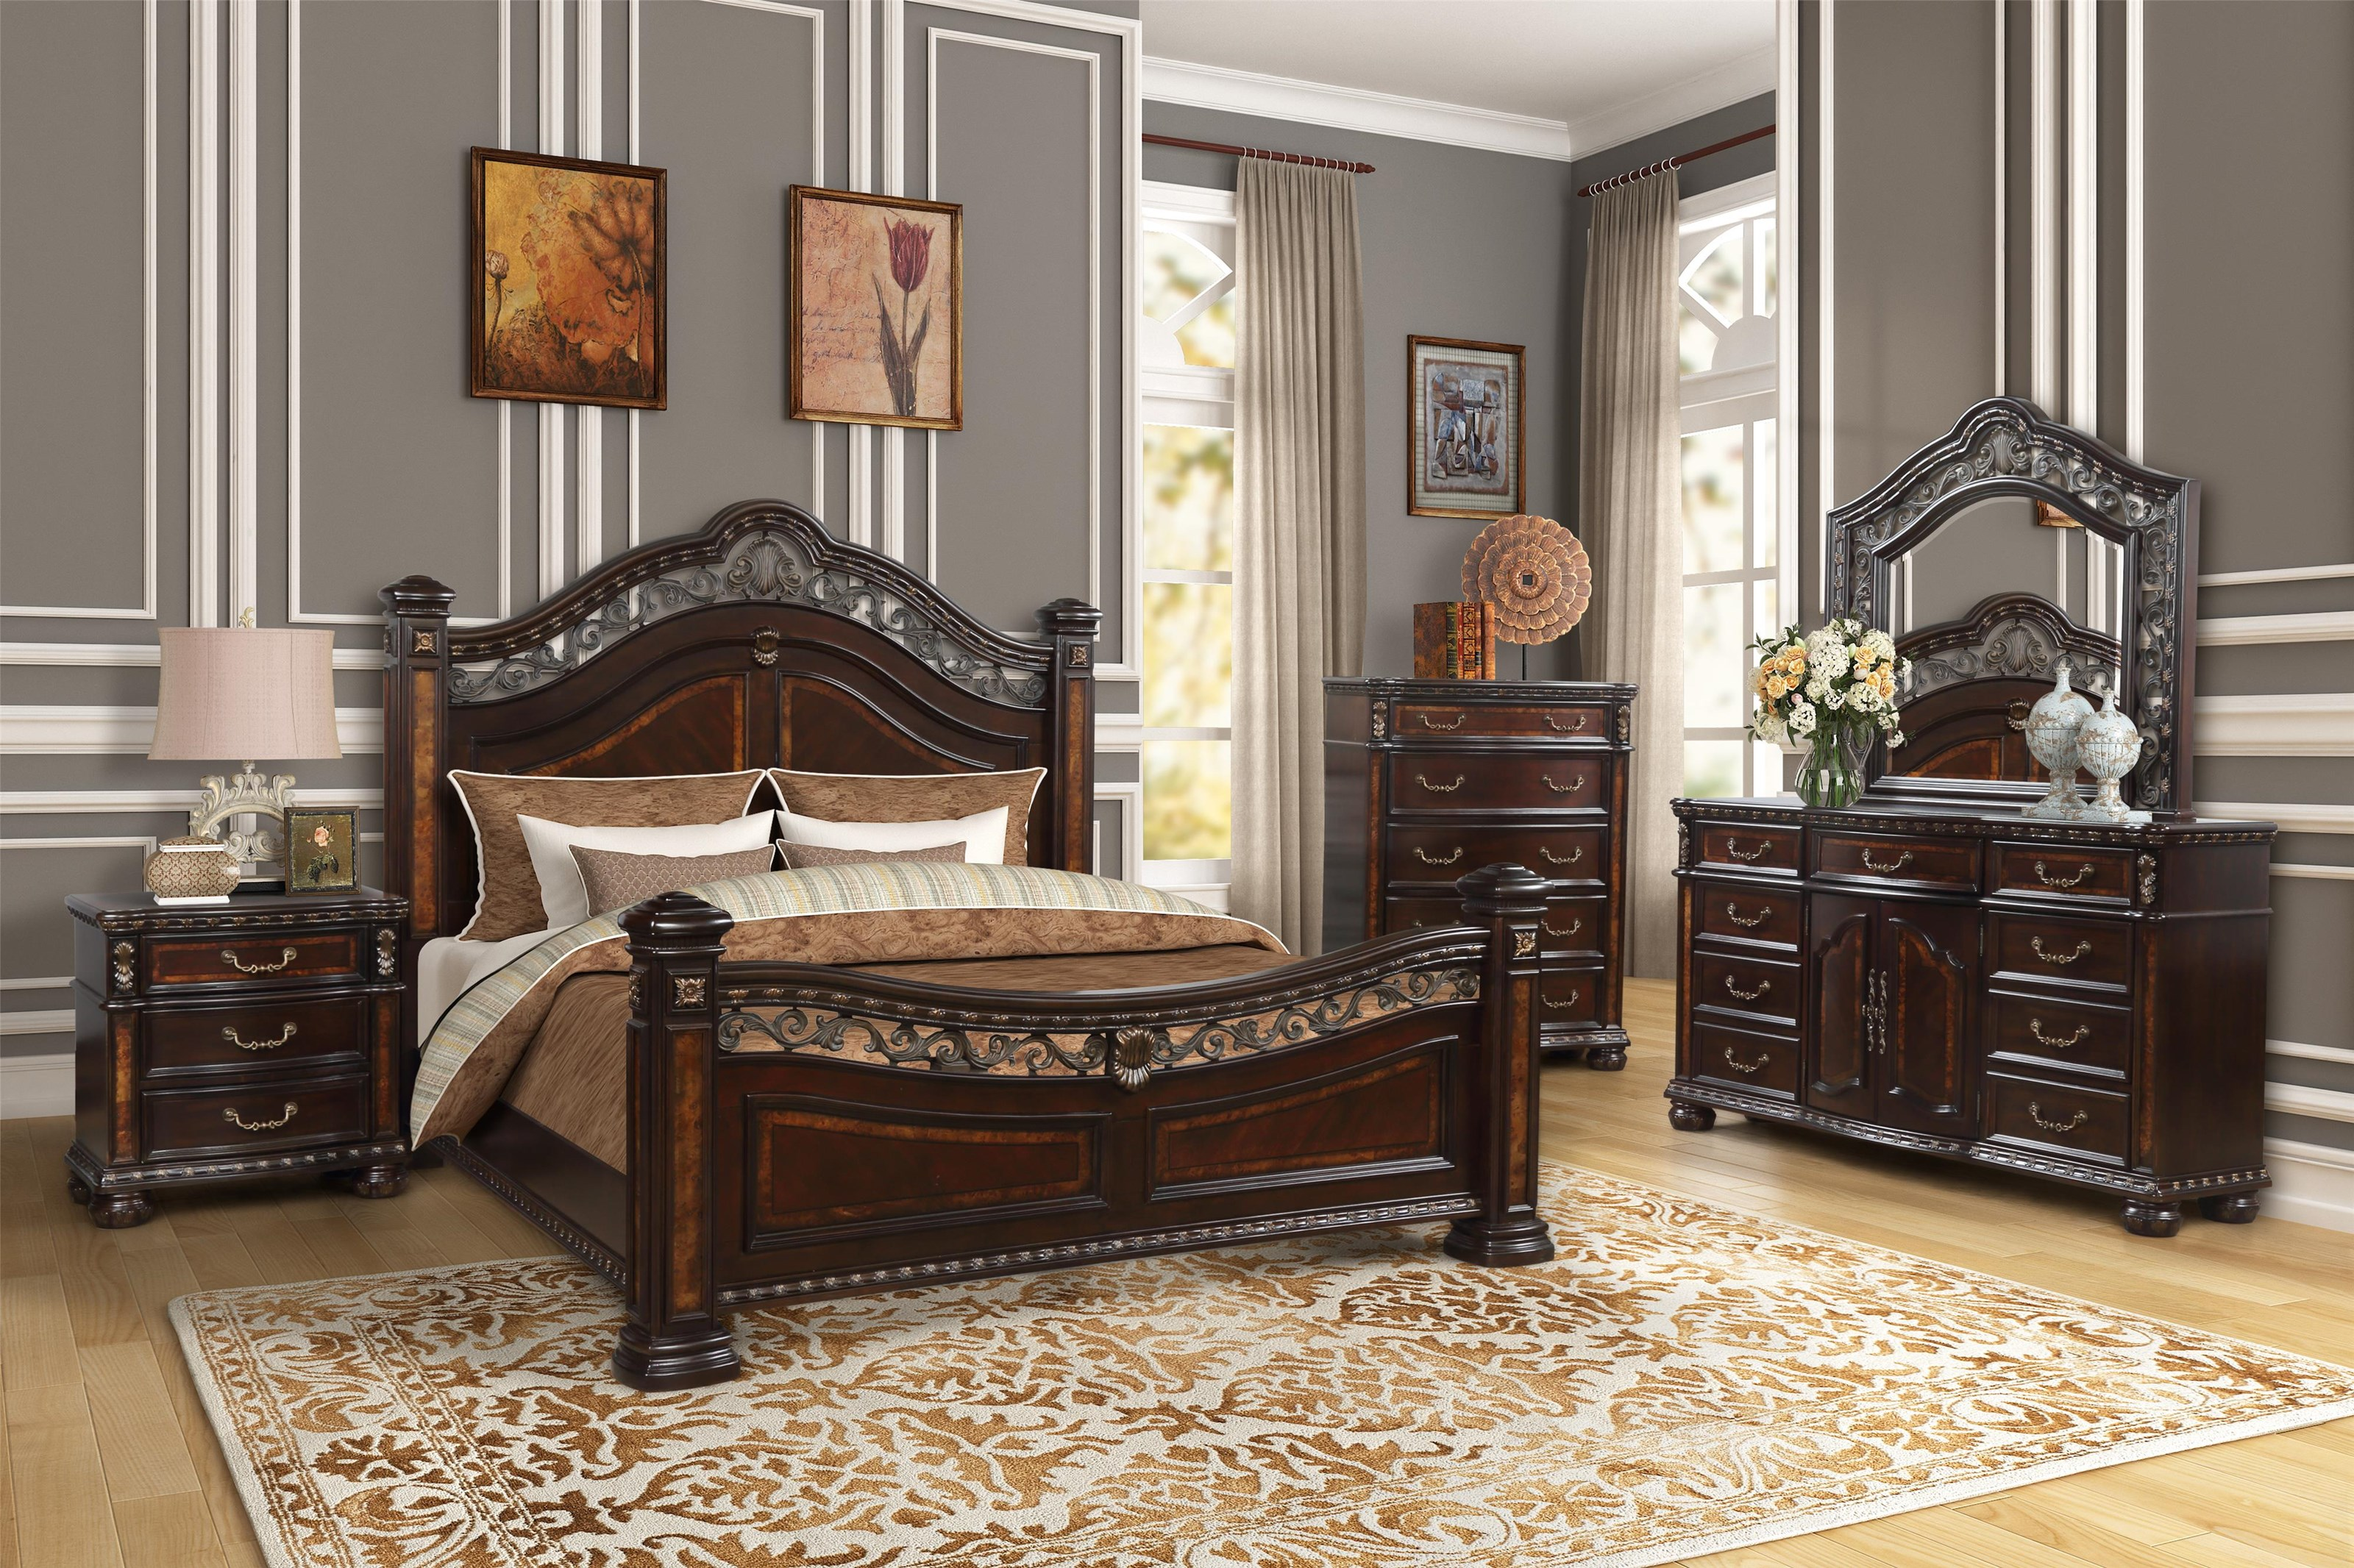 163 6PC QN BEDROOM by Household Furniture Direct at Household Furniture